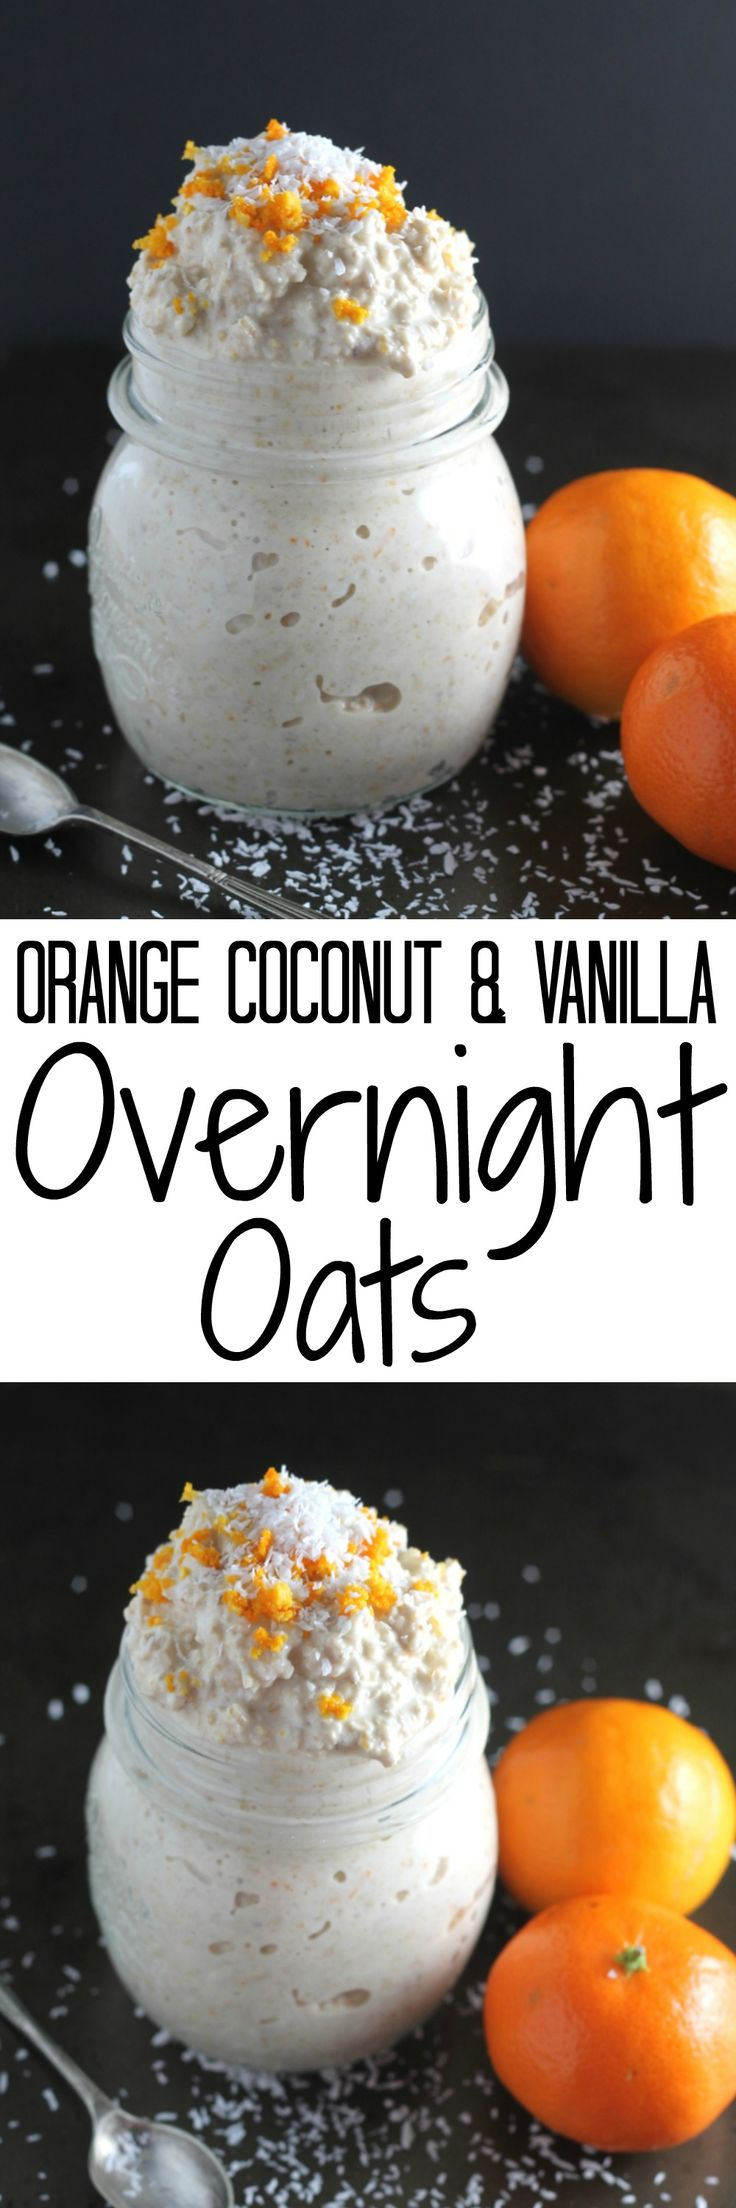 Orange-Coconut-Vanilla-Overnight-Oats_Pin More